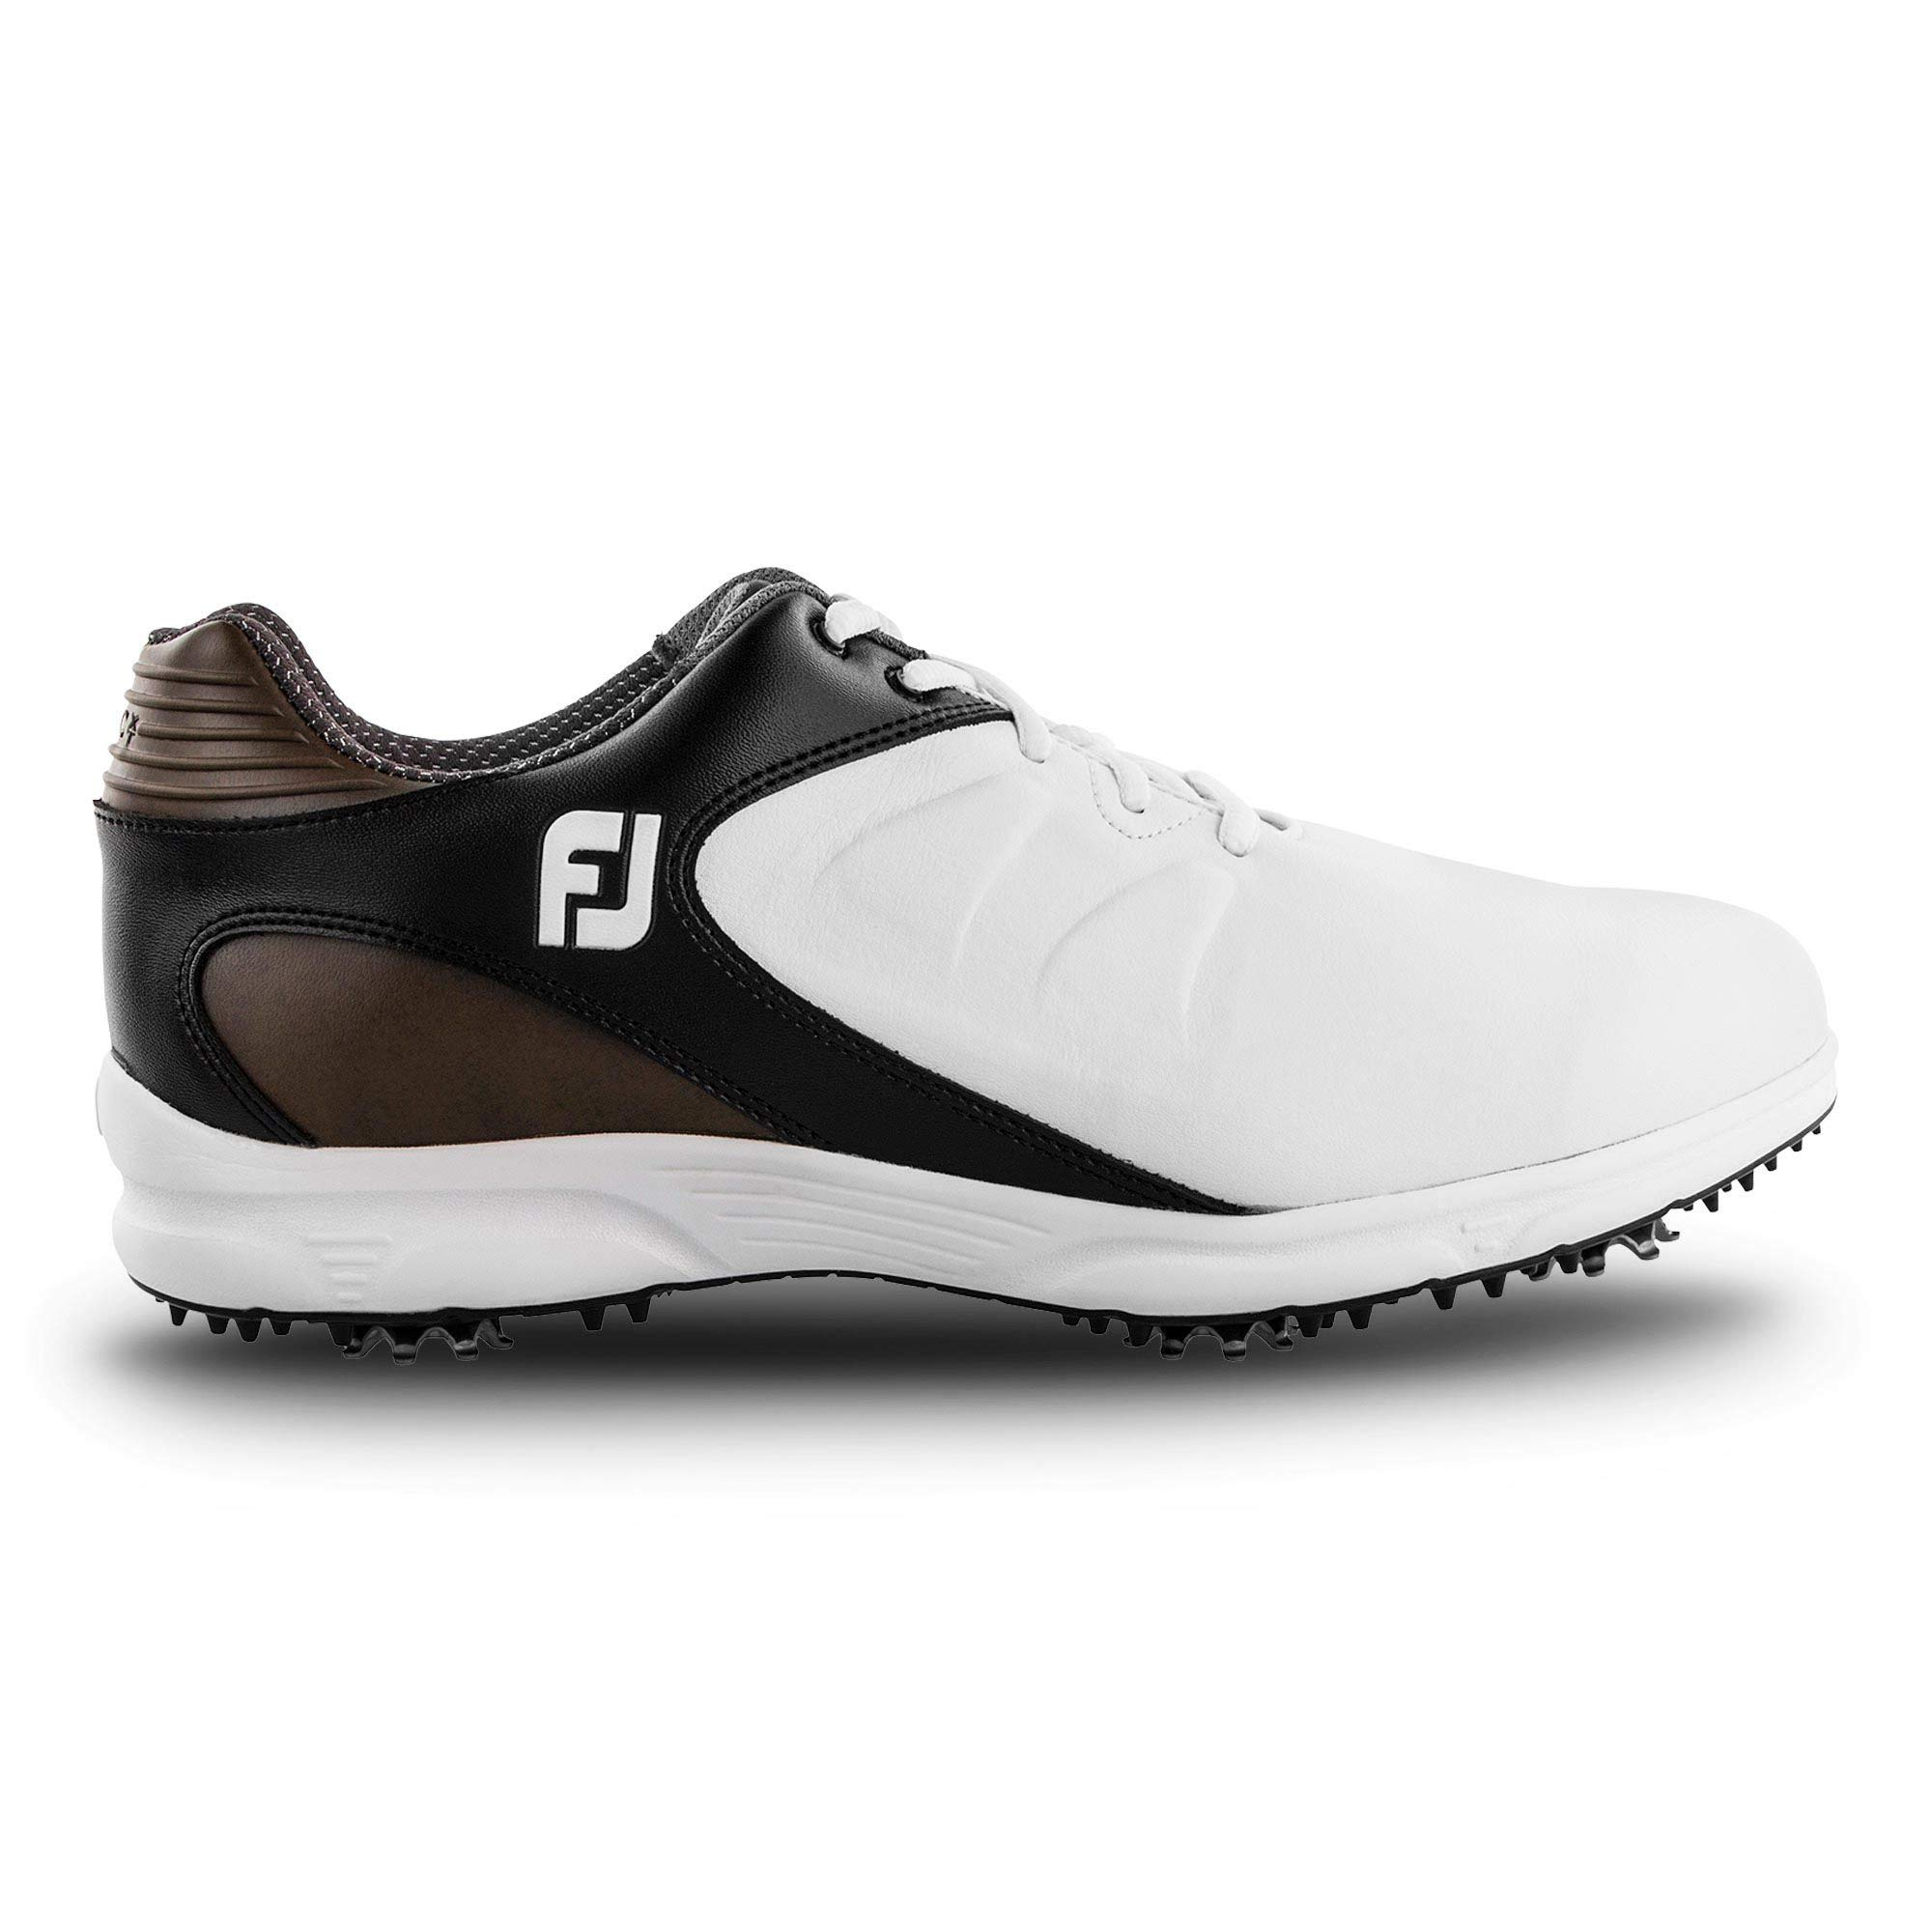 FootJoy Men's ARC XT Golf Shoes, White, 9.5 W by FootJoy